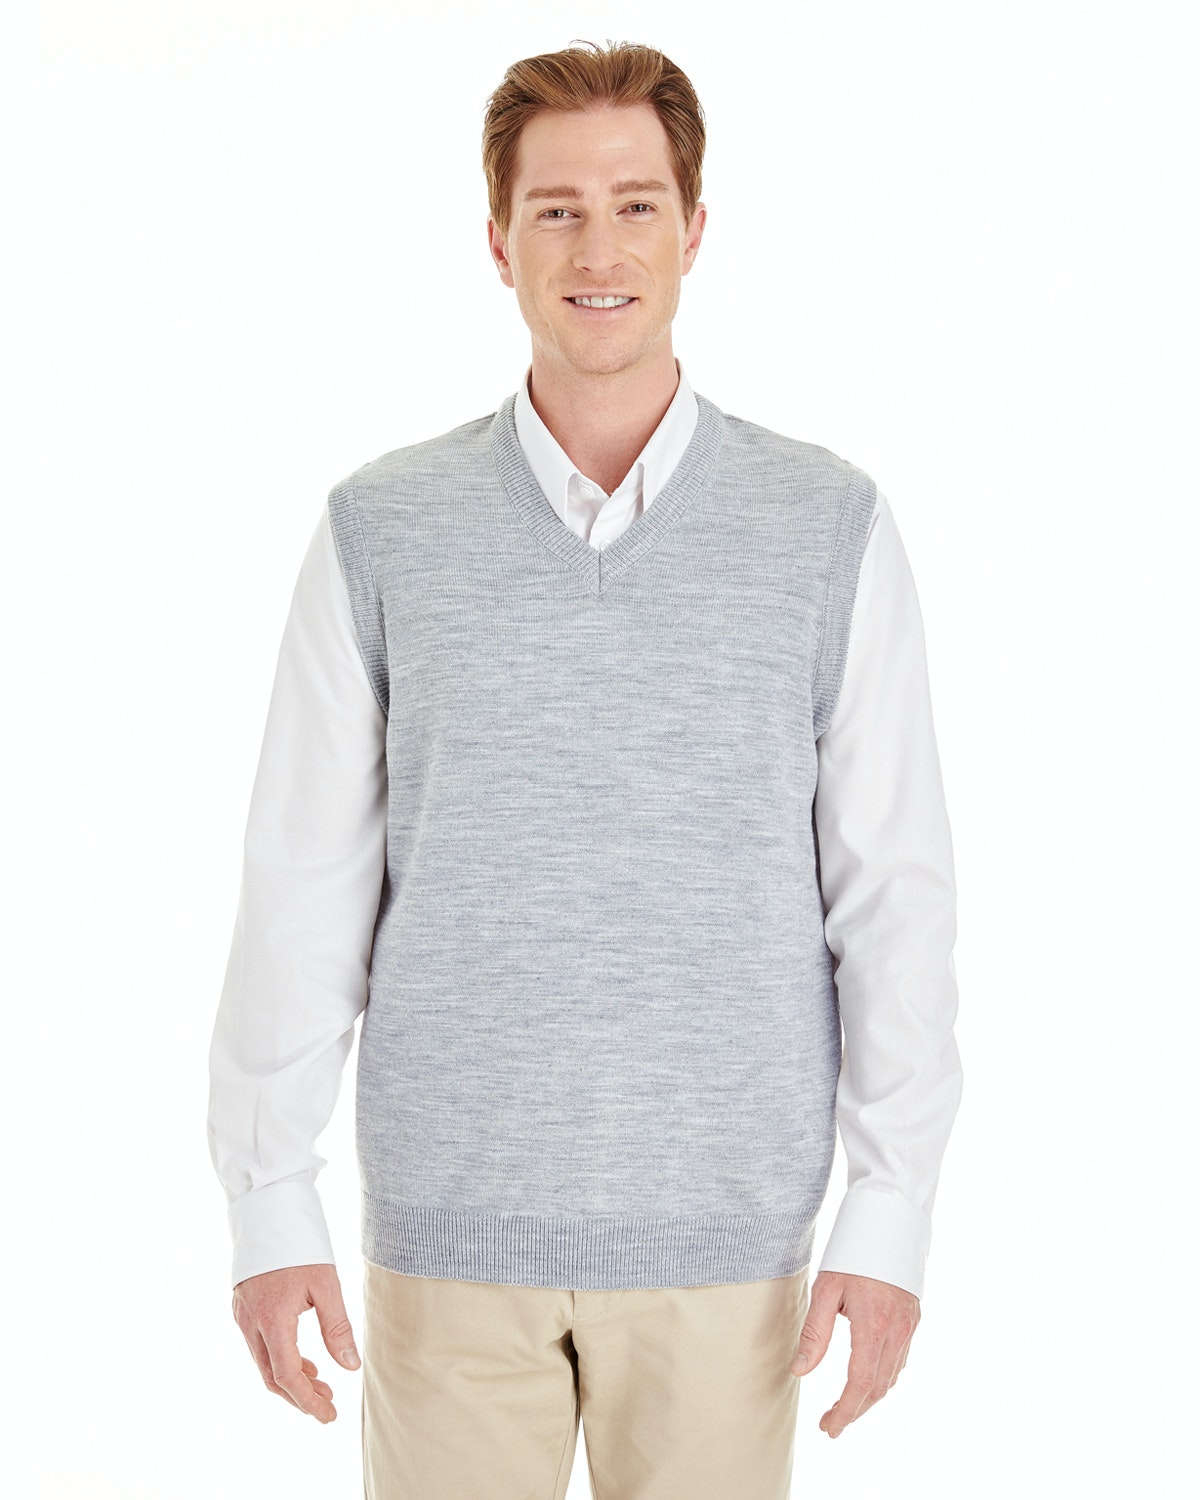 M415 - Grey Heather